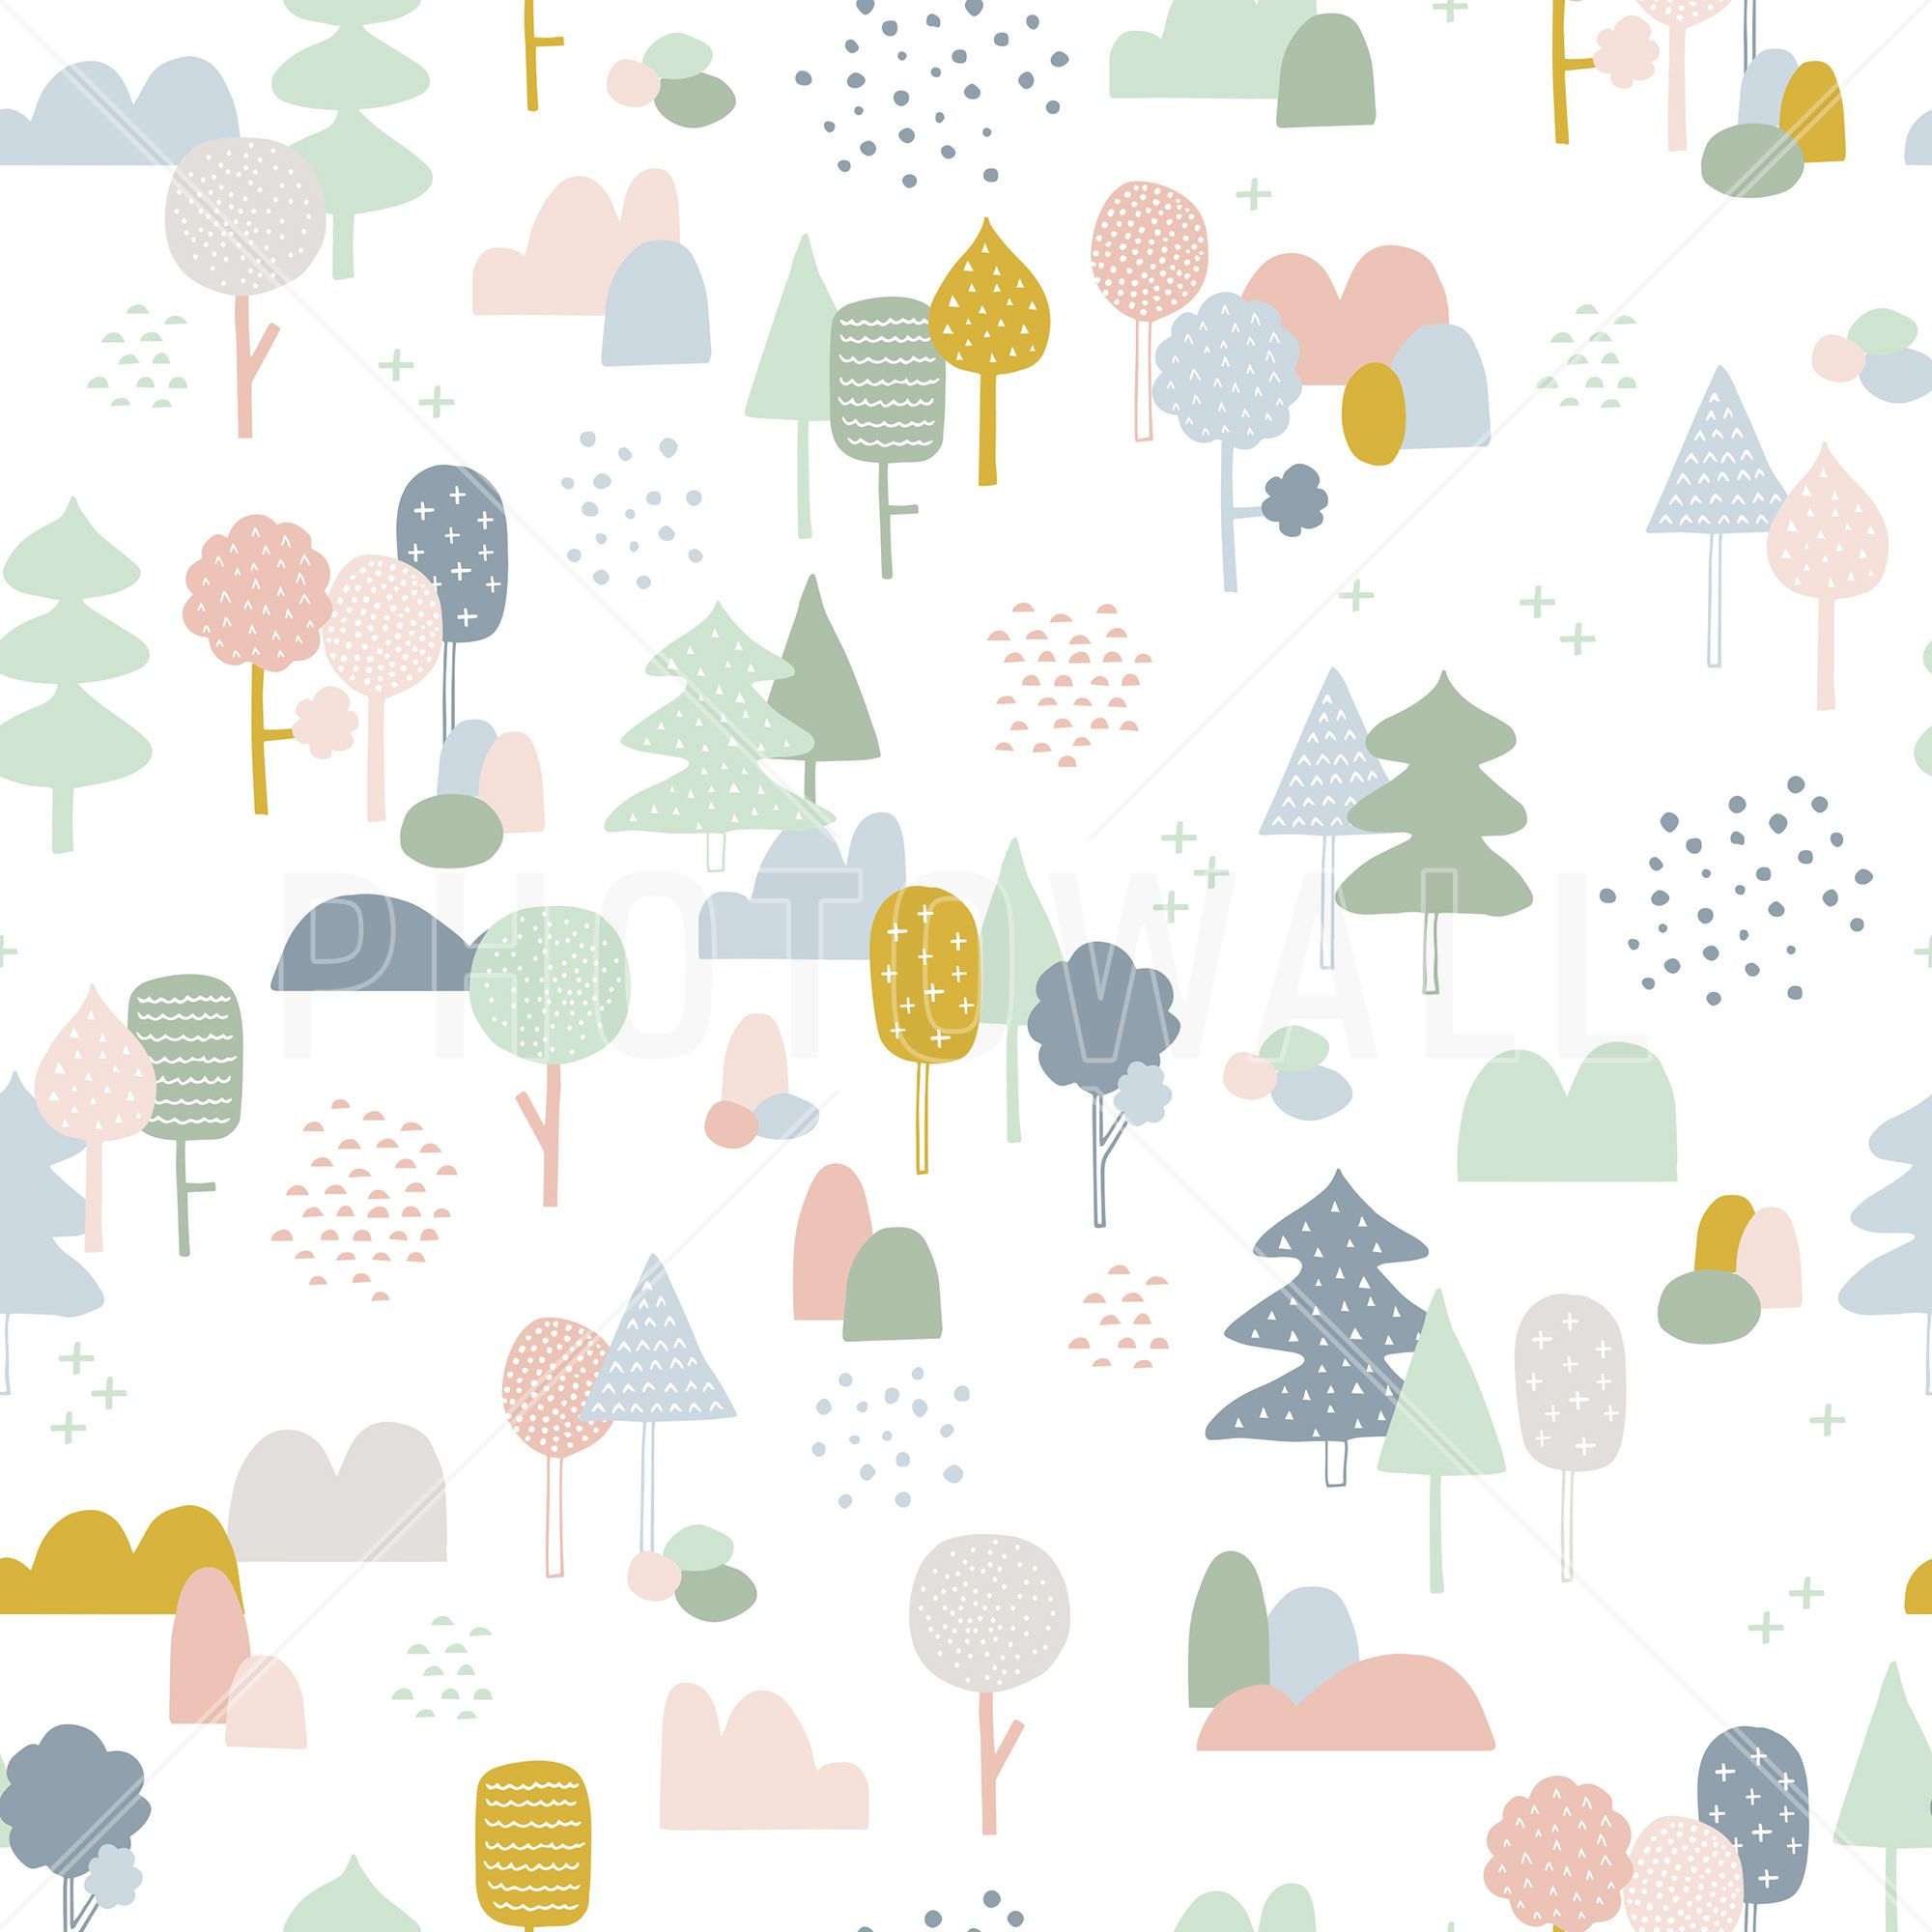 Woods Multi Wall Mural Photo Wallpaper Photowall Wallpaper Childrens Room Kids Wallpaper Scandinavian Wallpaper